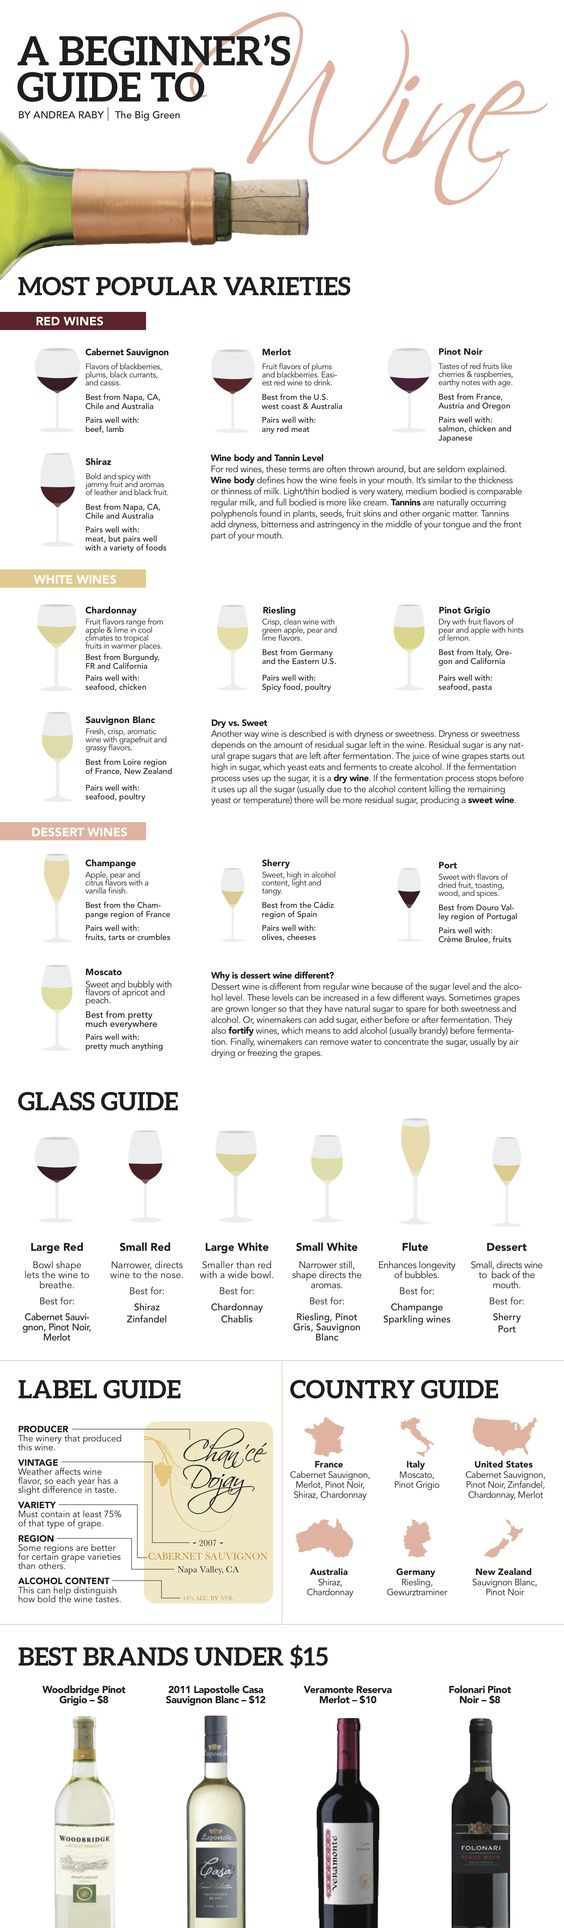 A Beginner's Guide to Wine - Andrea Raby   The Big Green: